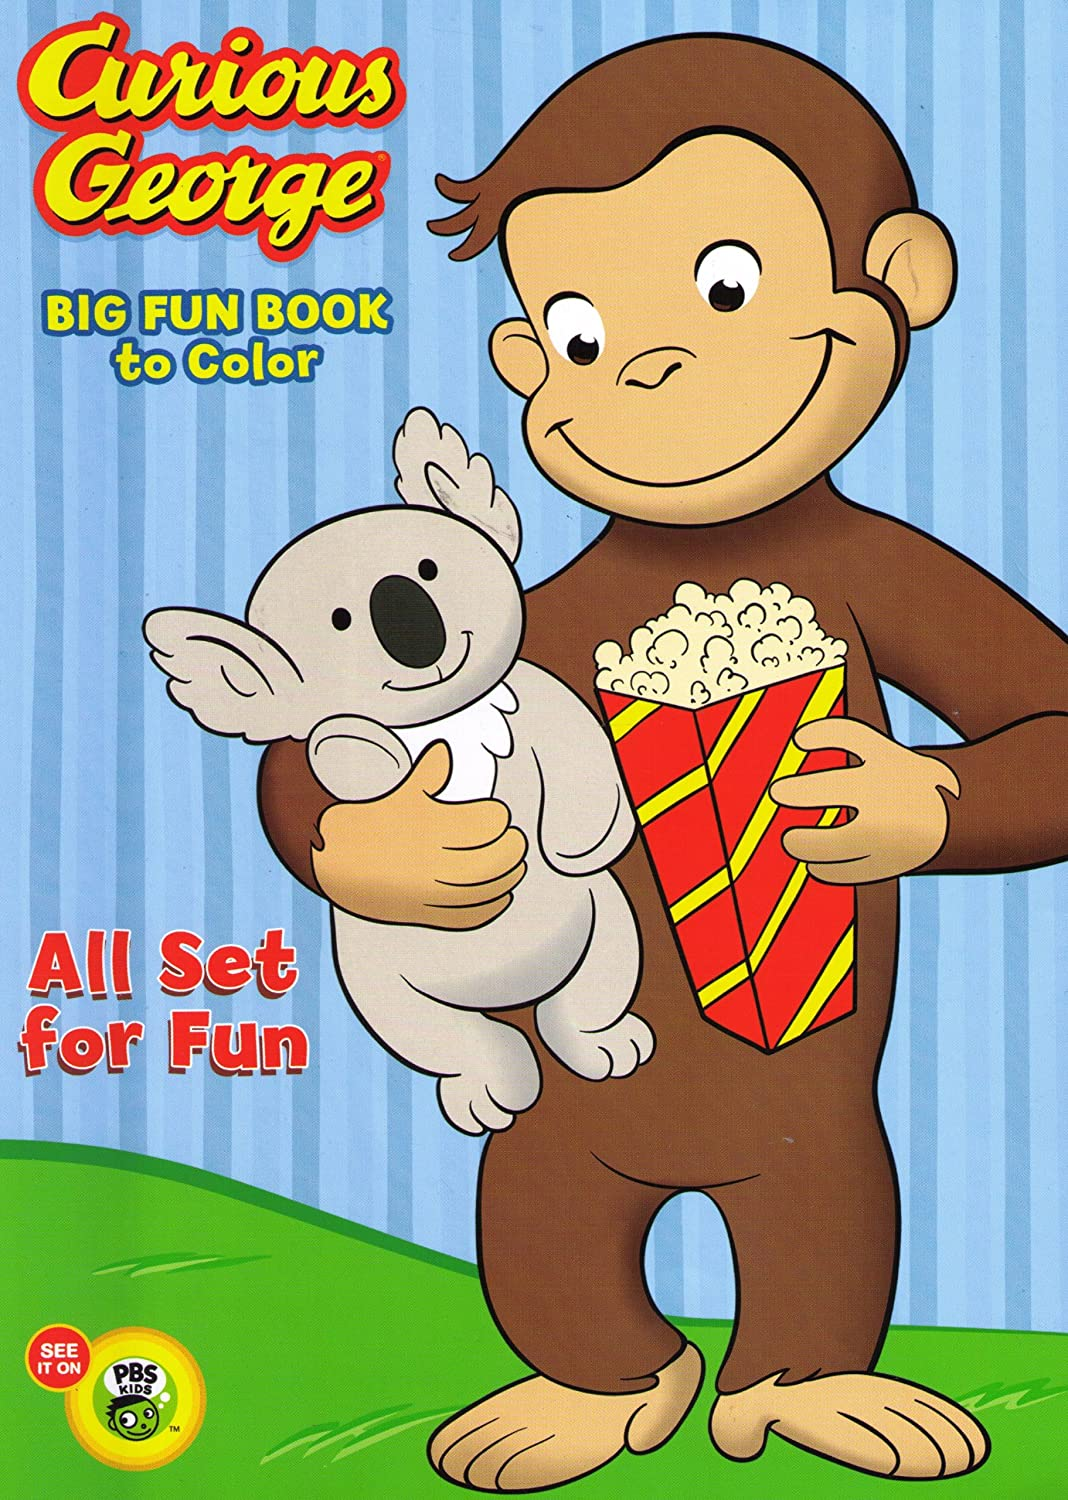 amazoncom curious george coloring book 3 pack toys games - Curious George Coloring Book In Bulk